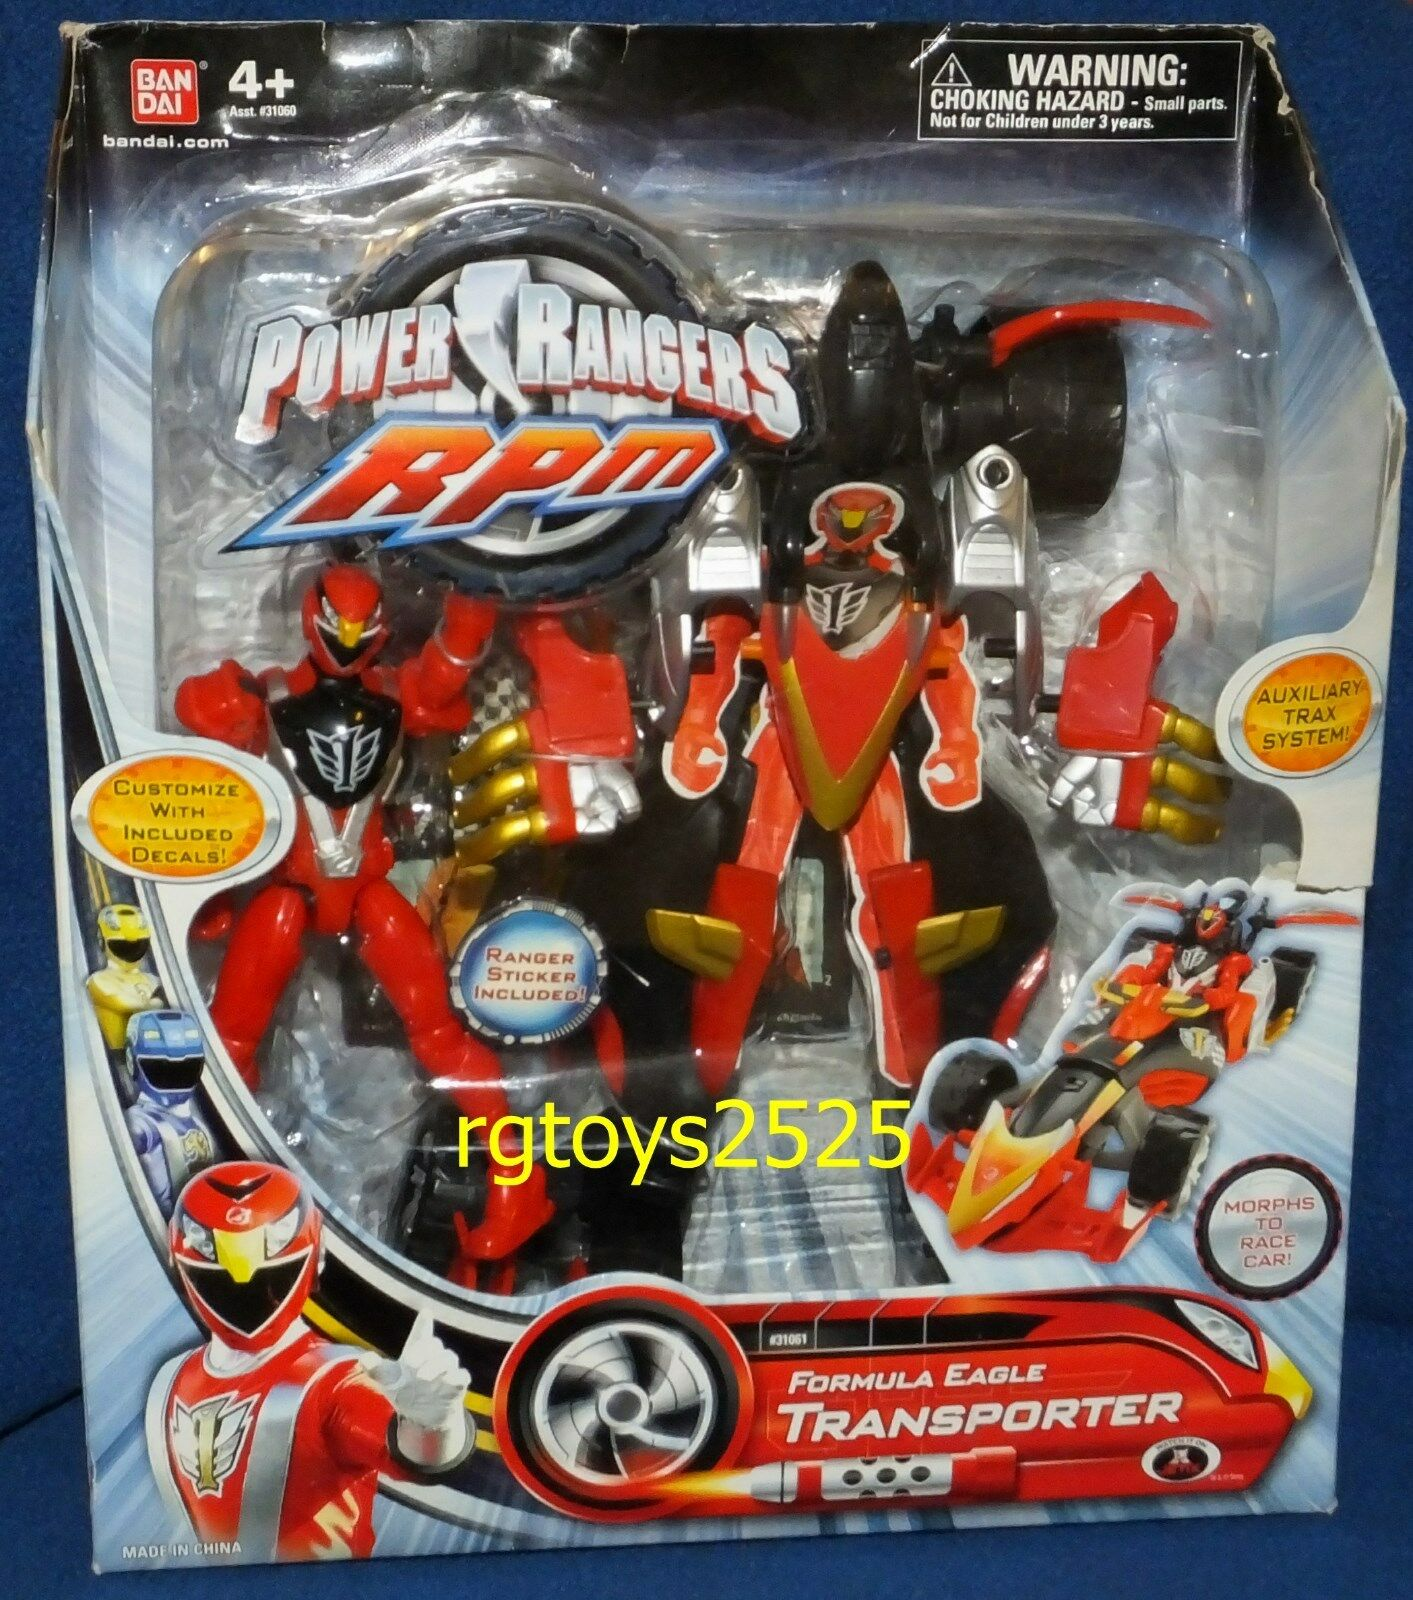 Power Rangers RPM Formula Eagle Transporter w 5